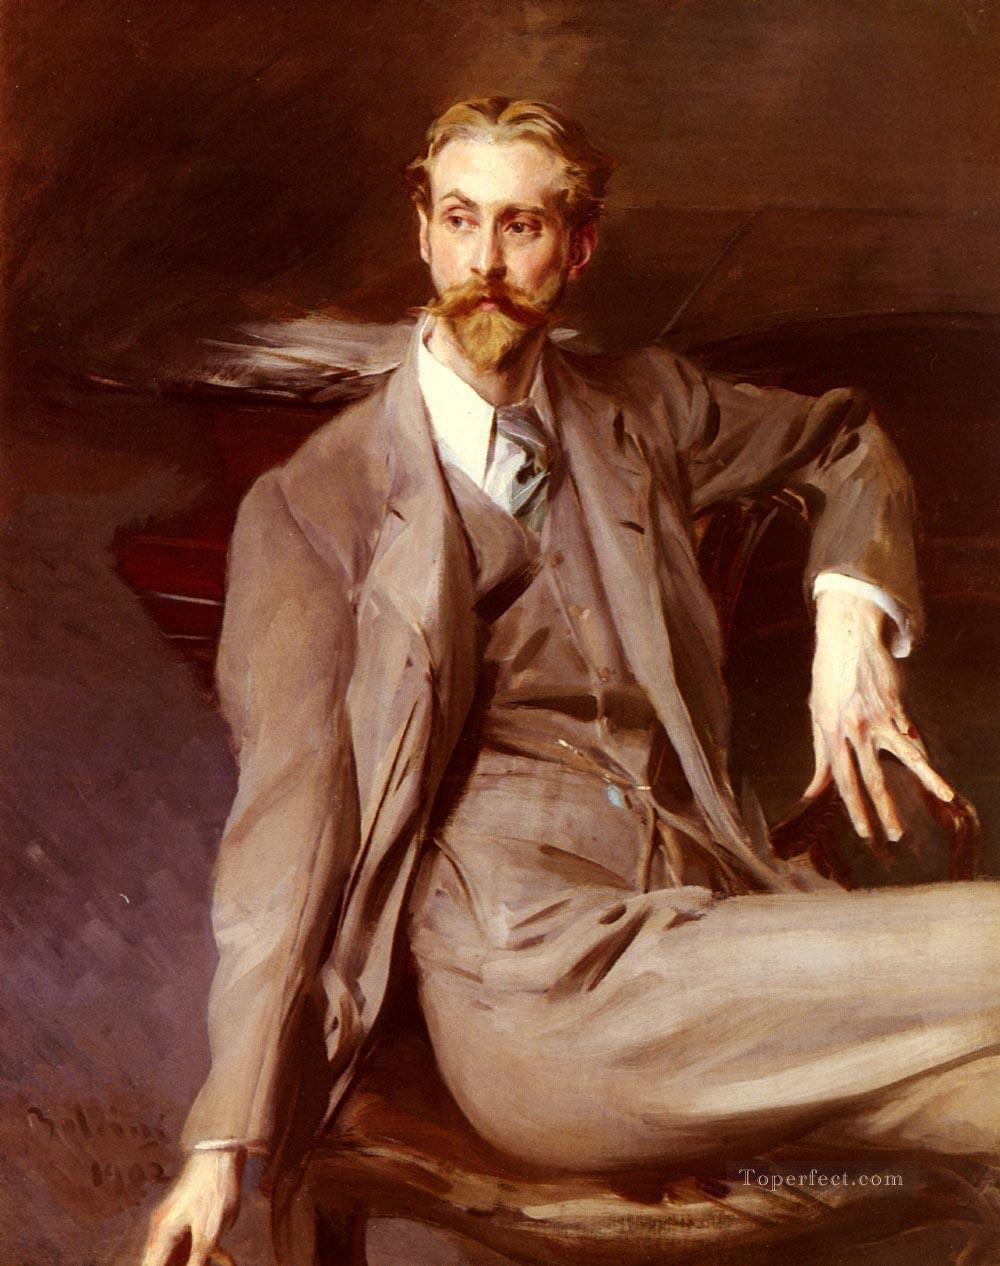 Portrait Of The Artist Lawrence Alexander Harrison genre Giovanni Boldini Oil Paintings